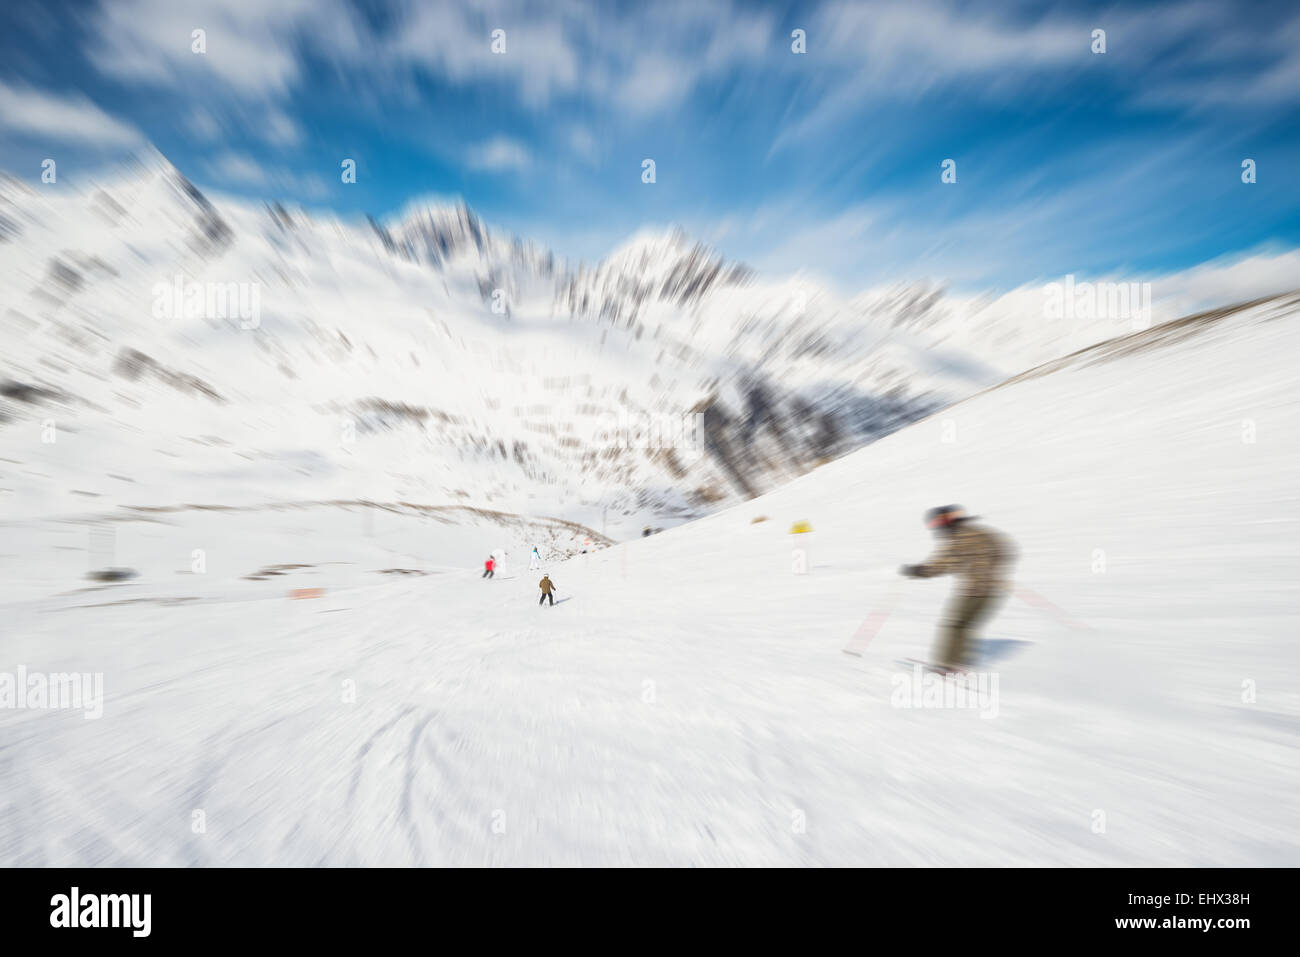 Speed skiing on snowy slope in the famous and scenic ski resort of La Thuile, Aosta Valley, Italy. Radial blurred - Stock Image